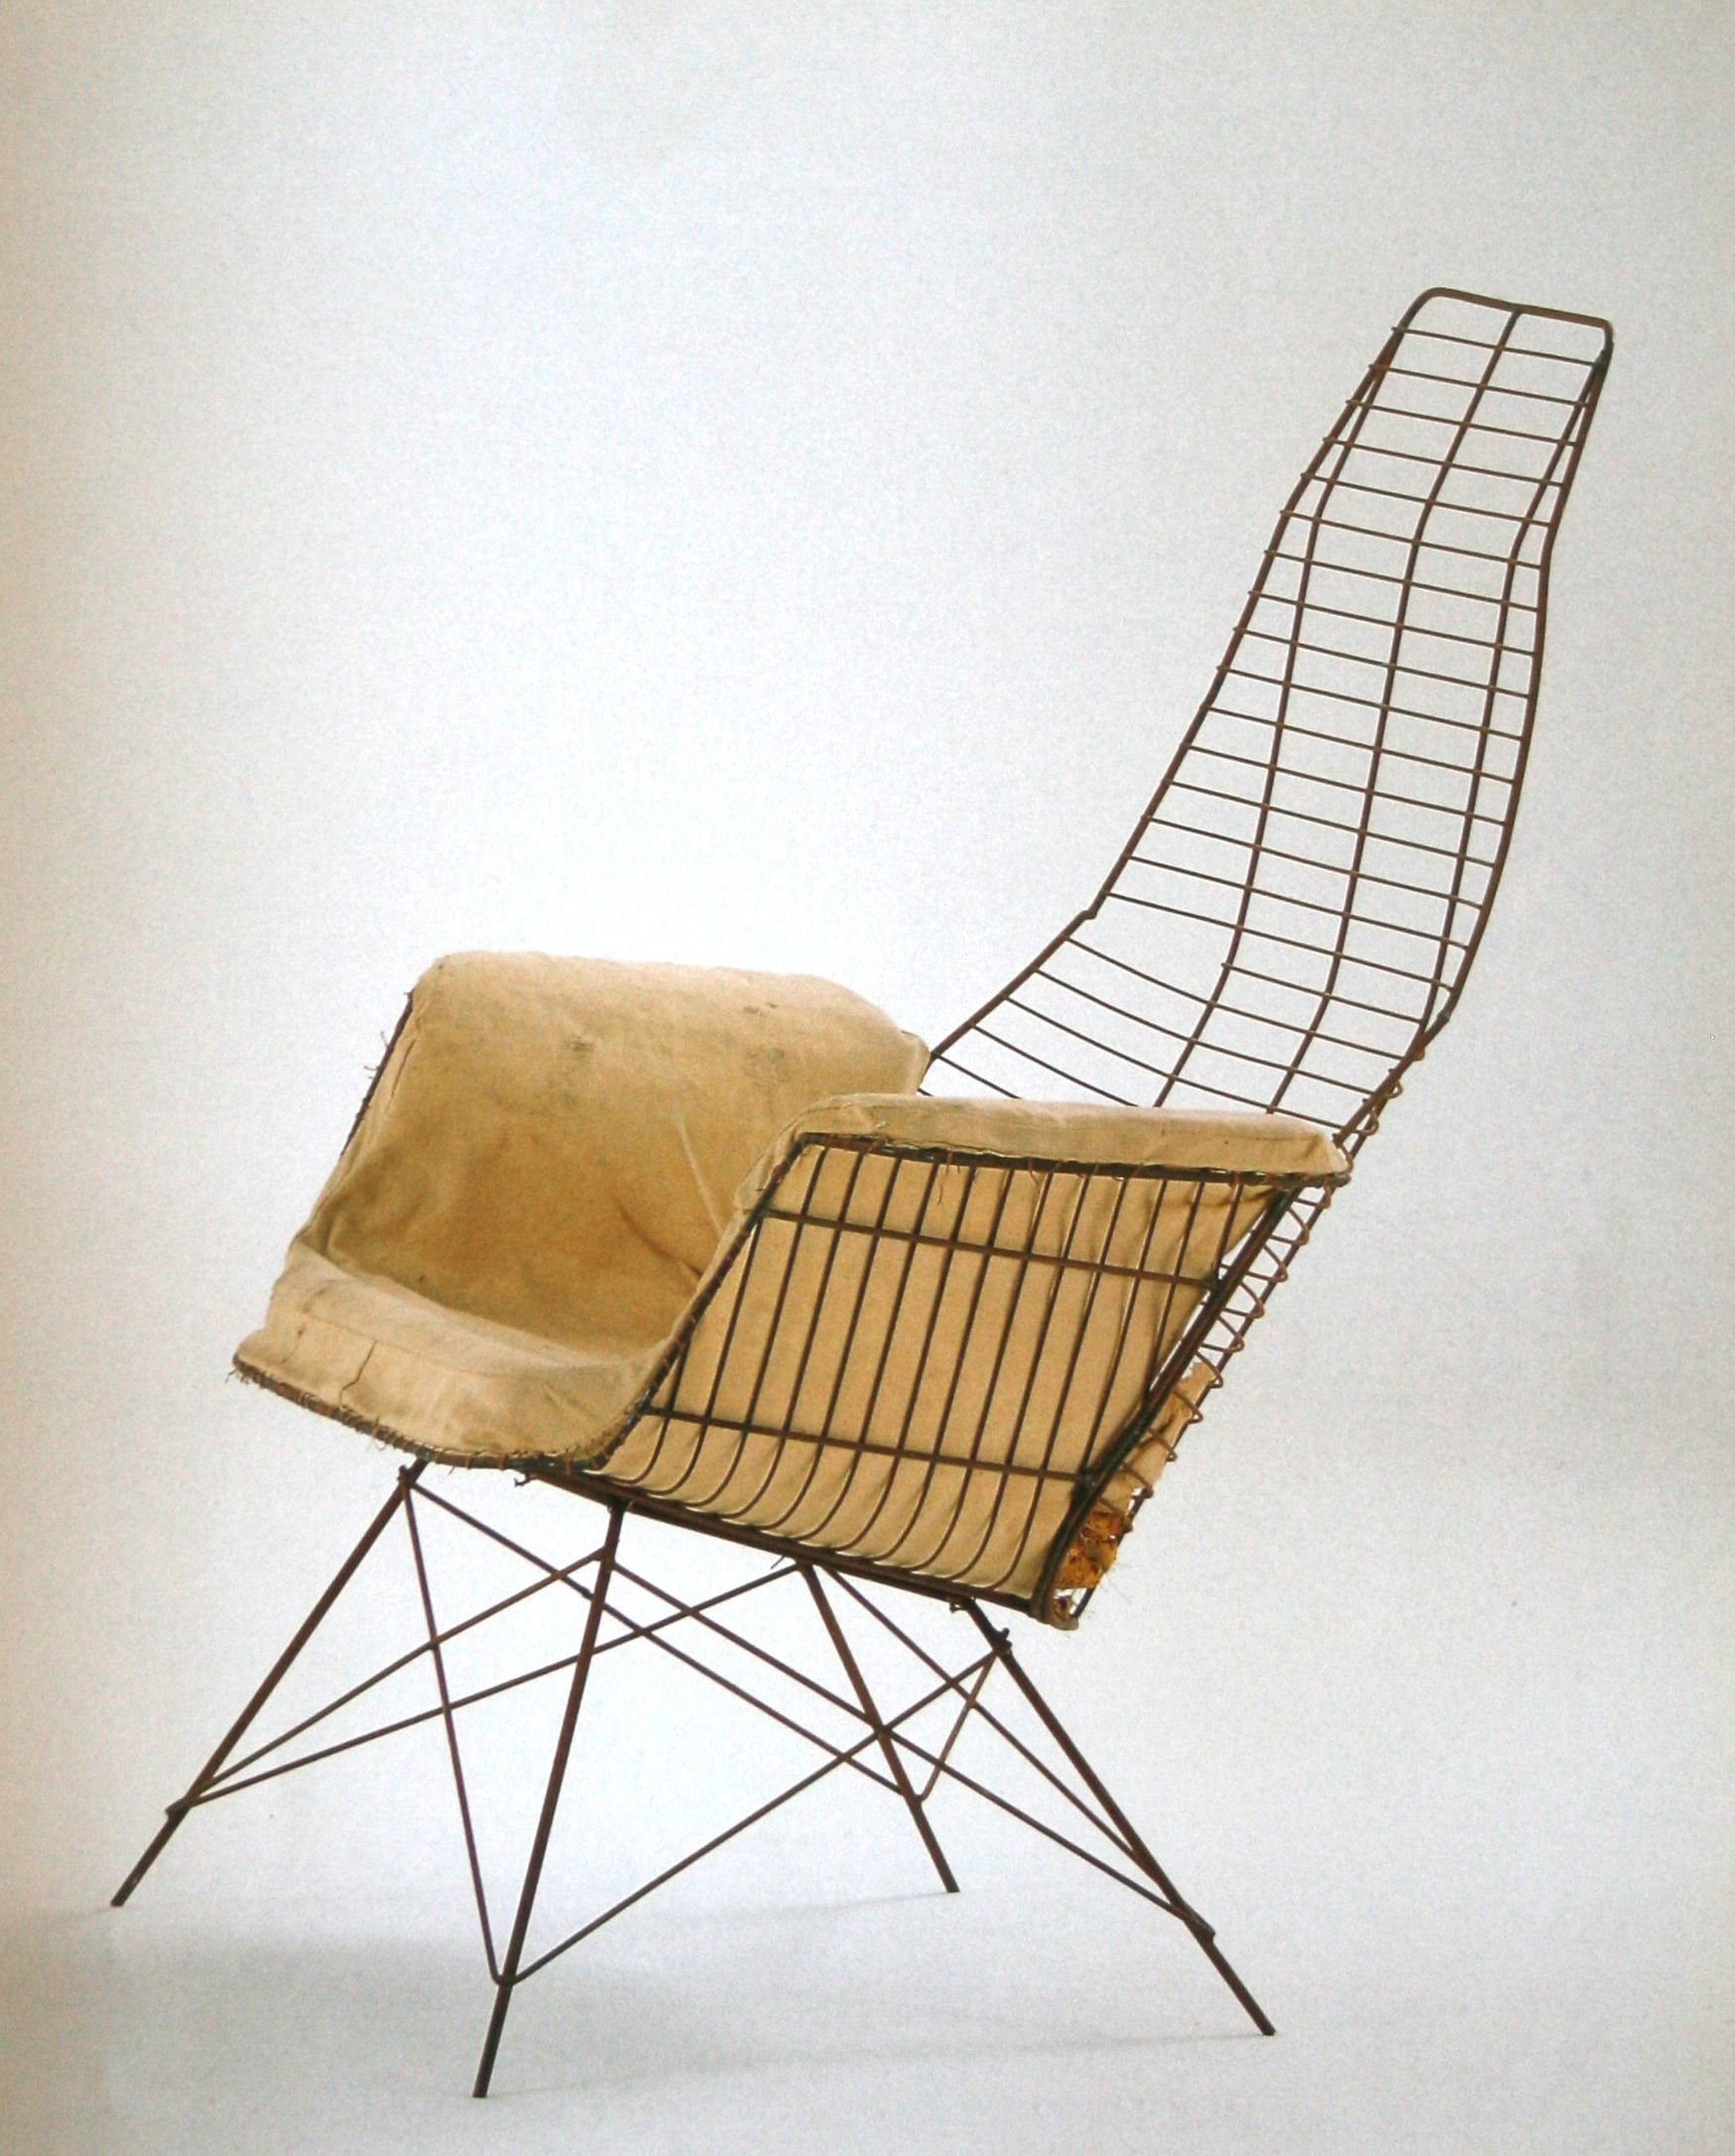 Charles and Ray Eames Enameled Metal Experimental Chair 1951